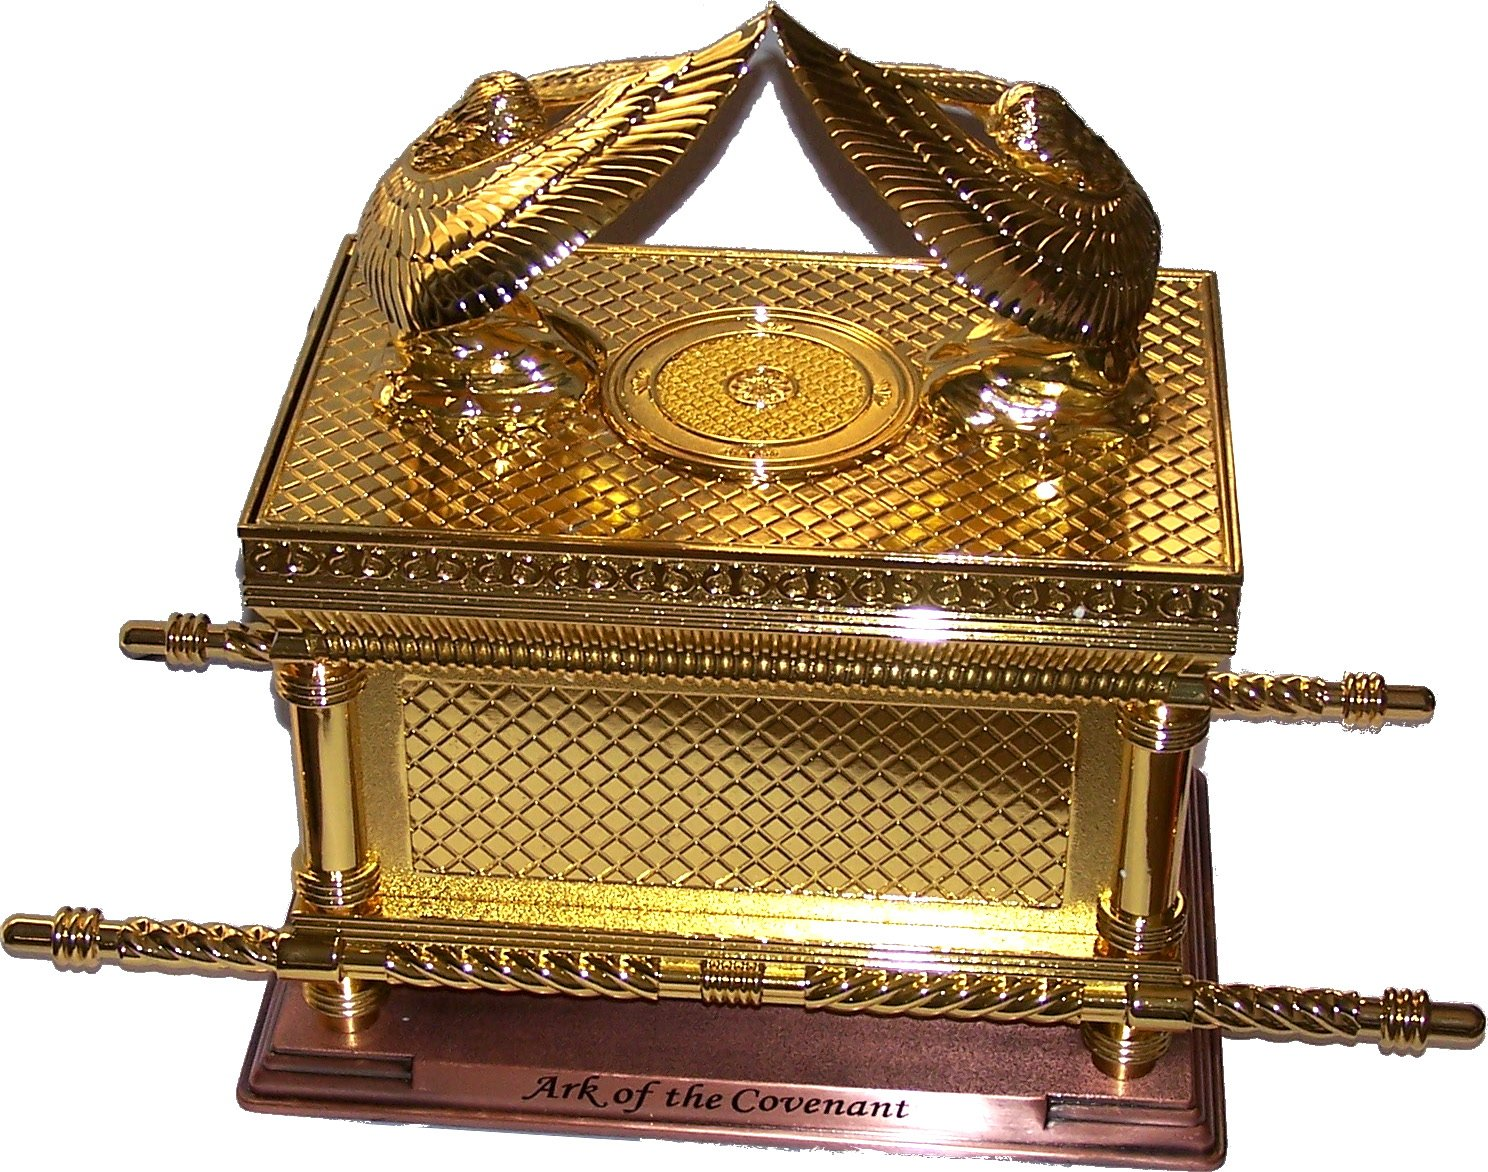 The Ark of The Covenant Gold Plated with Ark Contents Replica Aaron Rod, Tablets and Manna – Extra Large